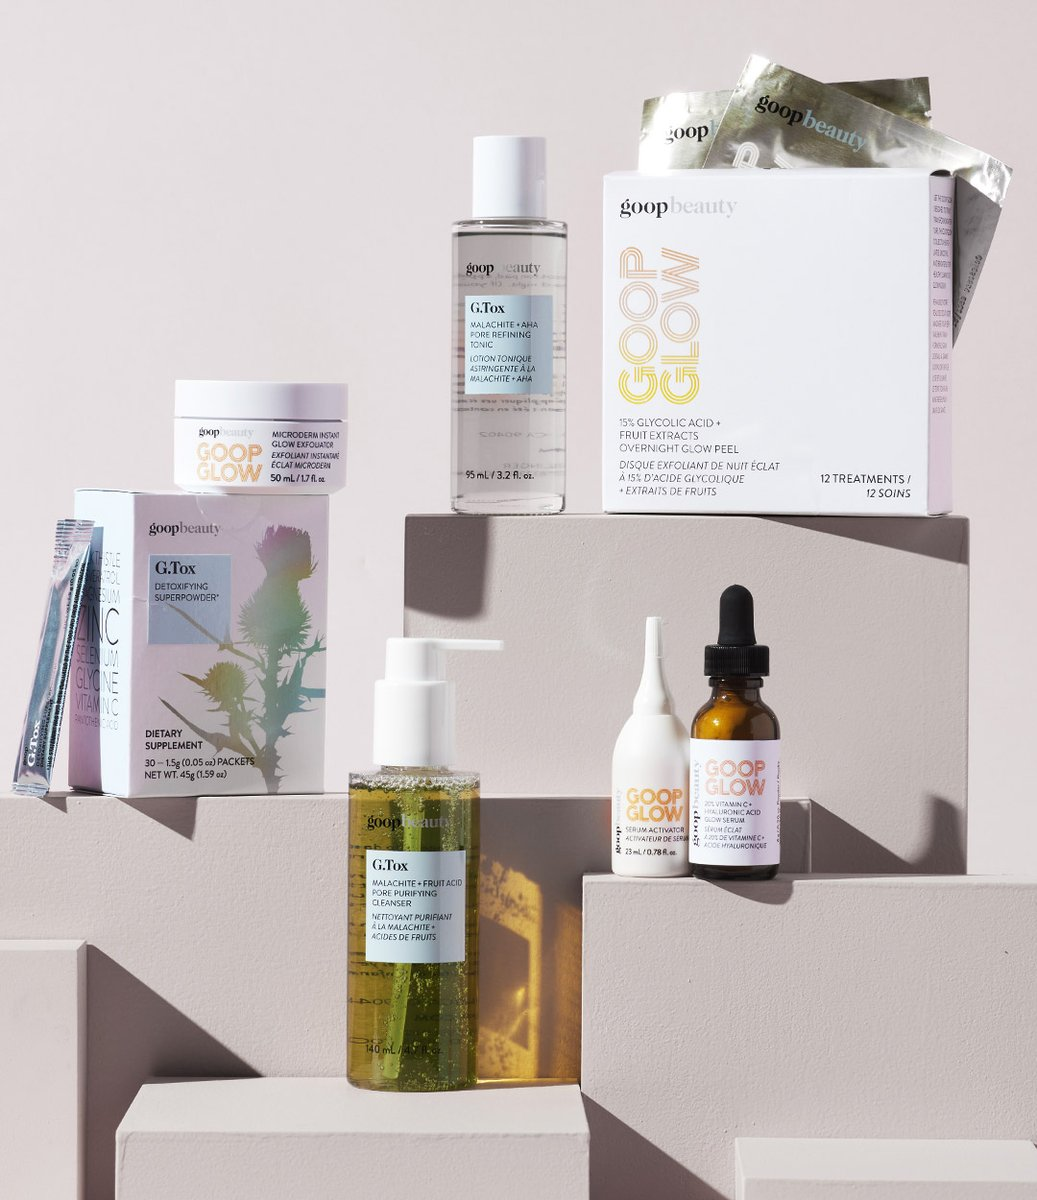 READY TO GLOW?!? New @goop is here! https://t.co/Dp9uYv5XR2 https://t.co/Sc77za7IBs